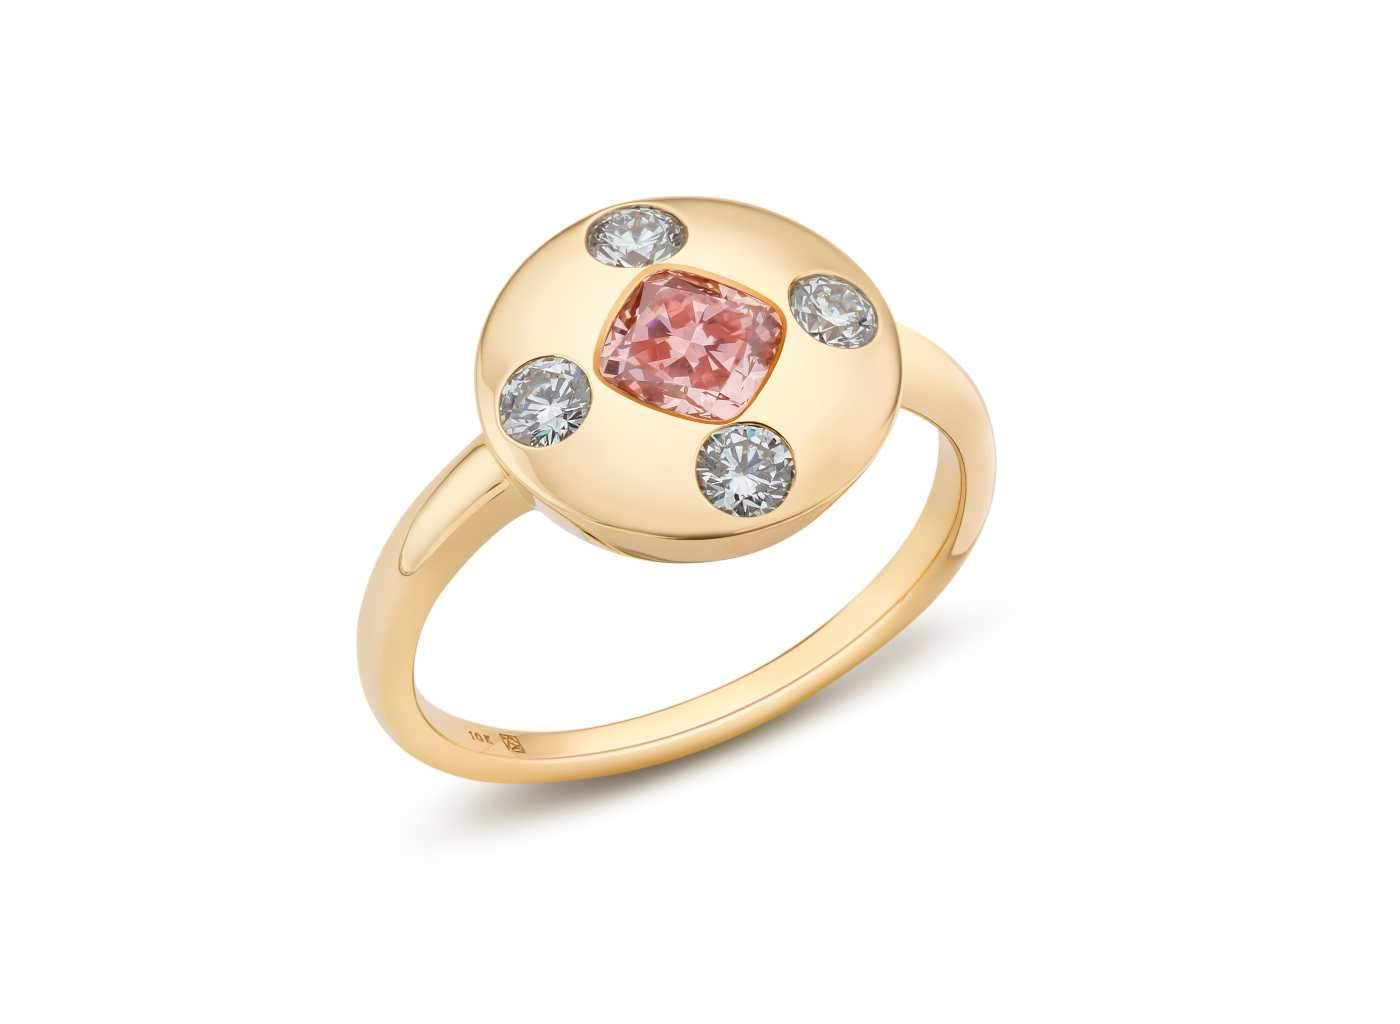 Side view of Muli Stone Signet Ring with pink and white diamonds